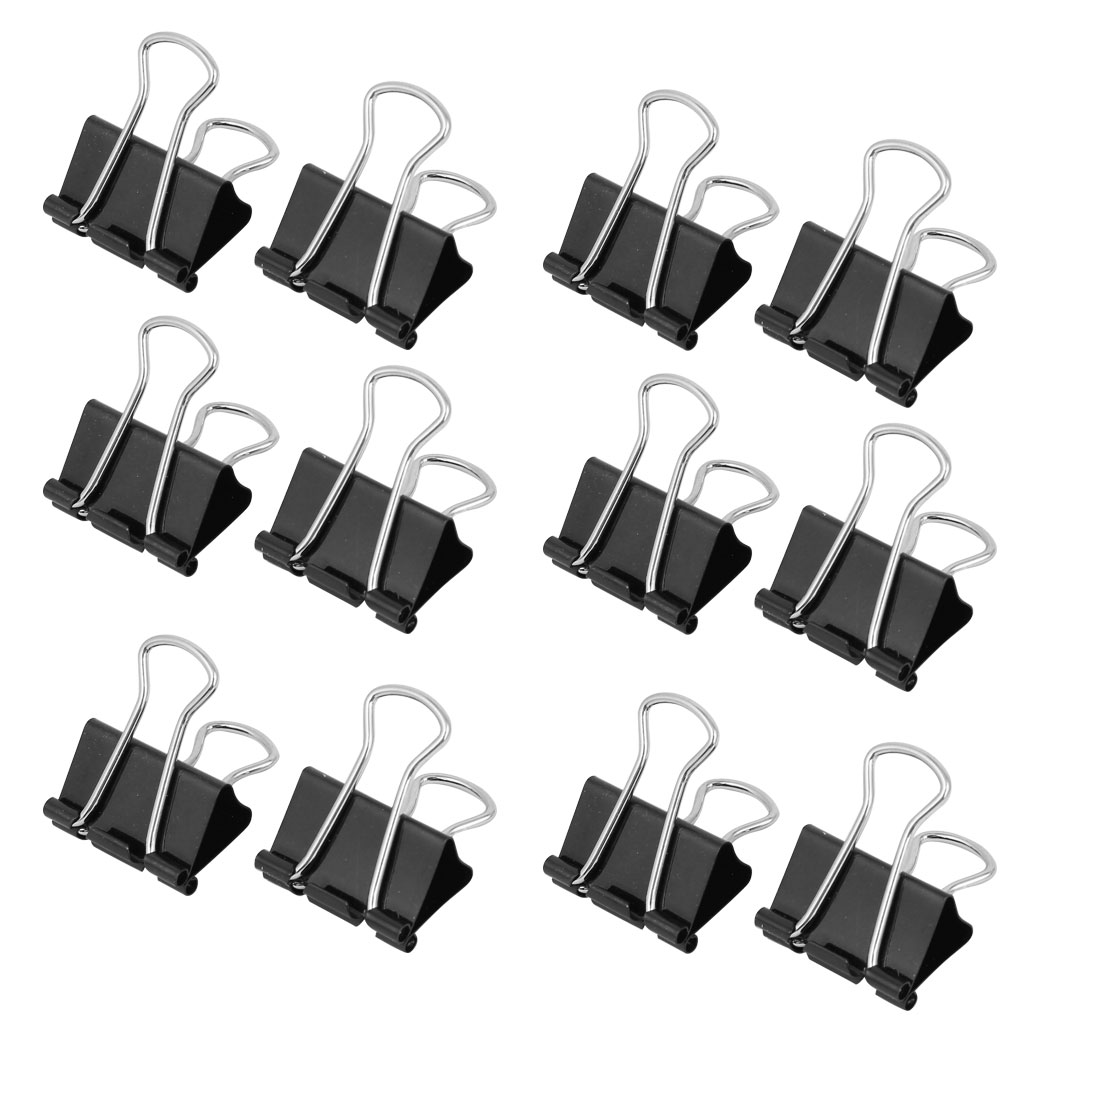 Unique Bargains 32mm Wide Black Metal Doucument File Paper Binder Clip Clamp 12pcs